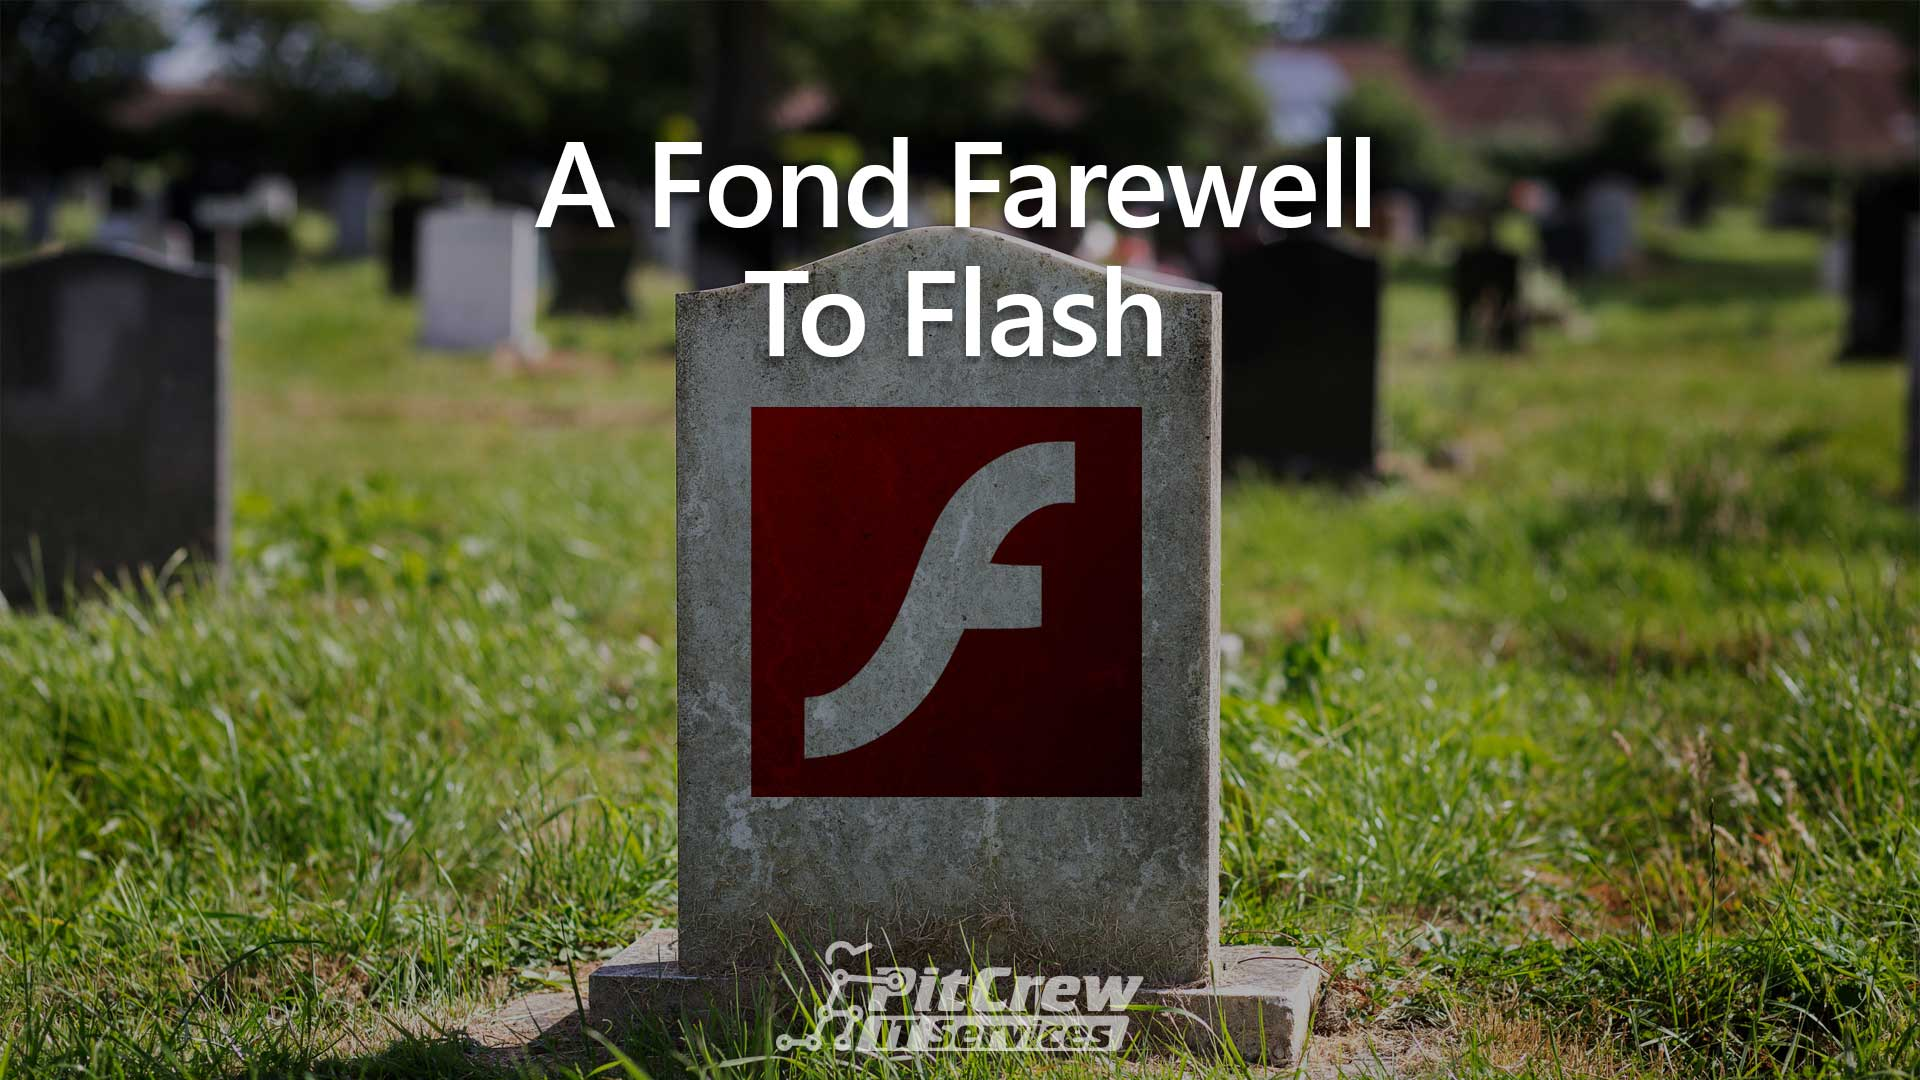 A Fond Farewell To Flash